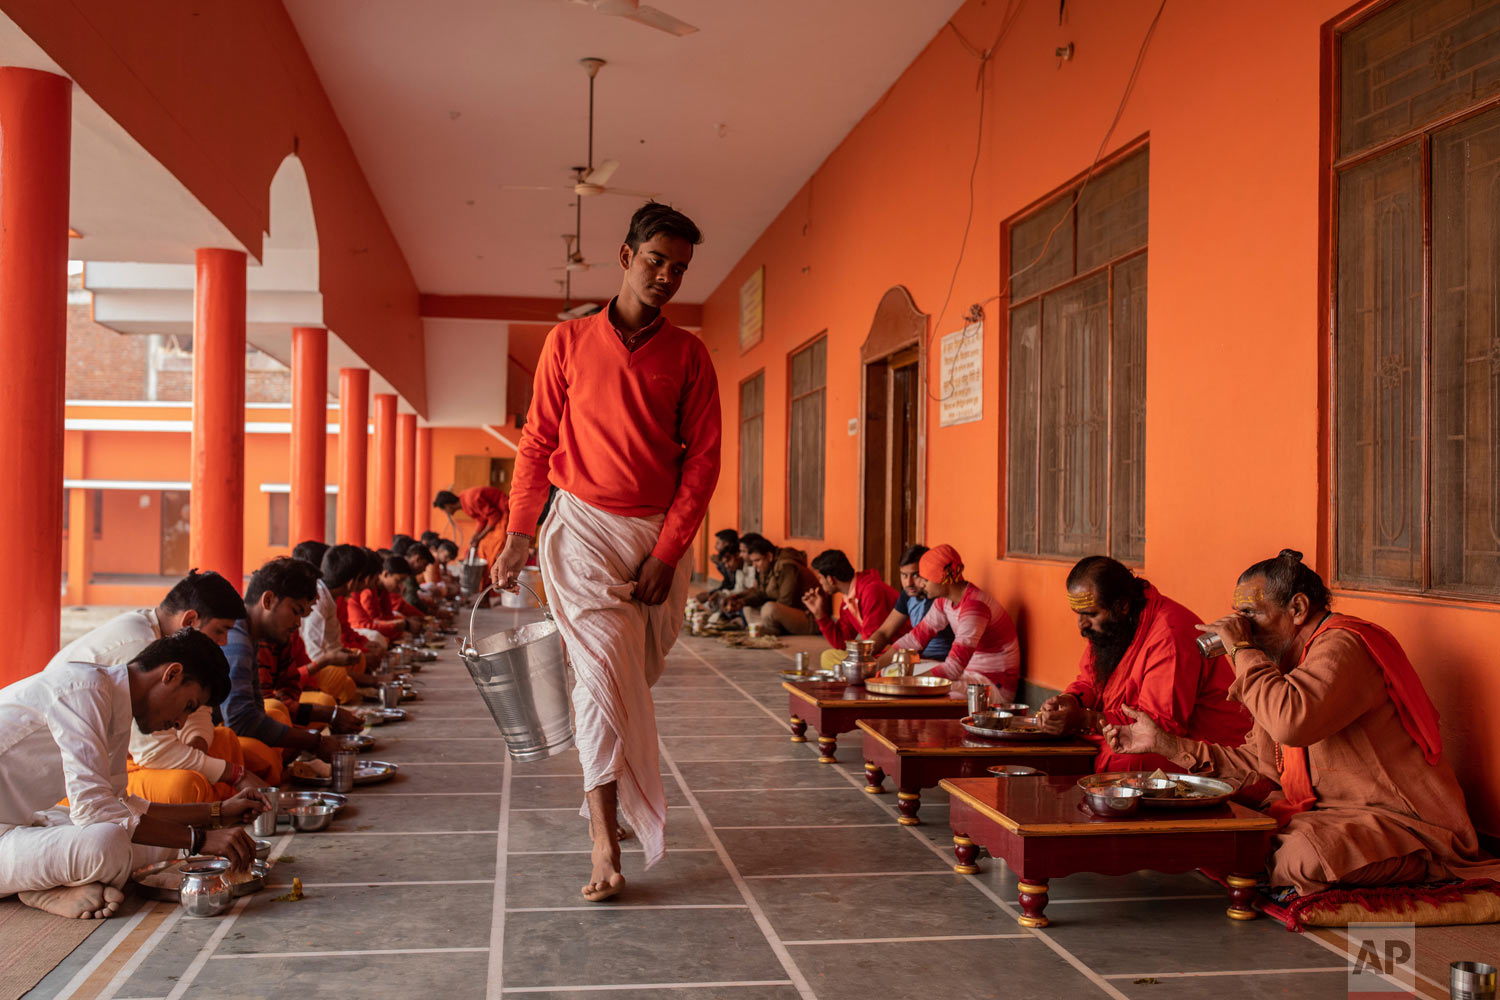 Hindu students of the Baghambari Math Gaddi have lunch in Prayagraj, India, Dec. 12, 2018. (AP Photo/Bernat Armangue)